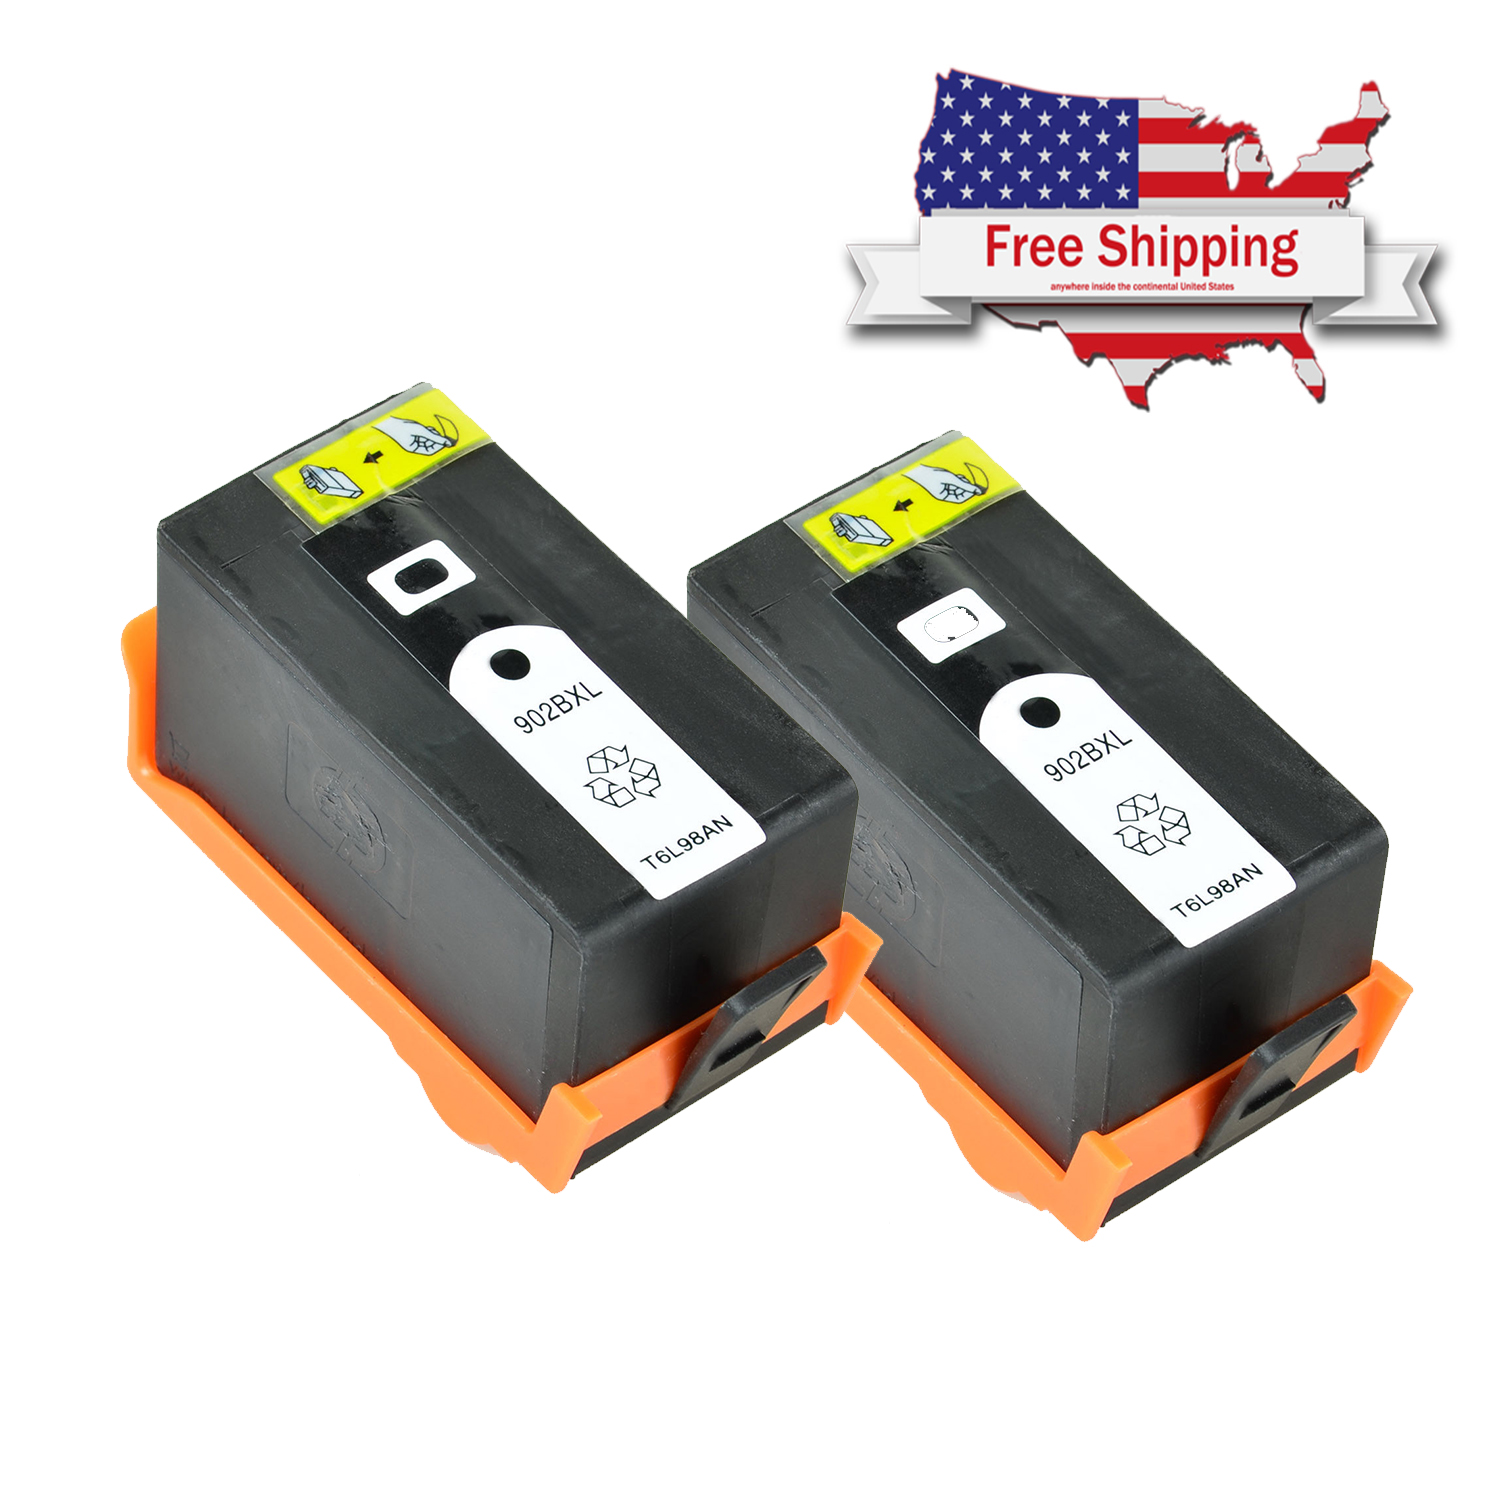 Details about 2 black Ink Cartridge for HP 902XXL OfficeJet 6962 6975 6960  6968 6978 6979